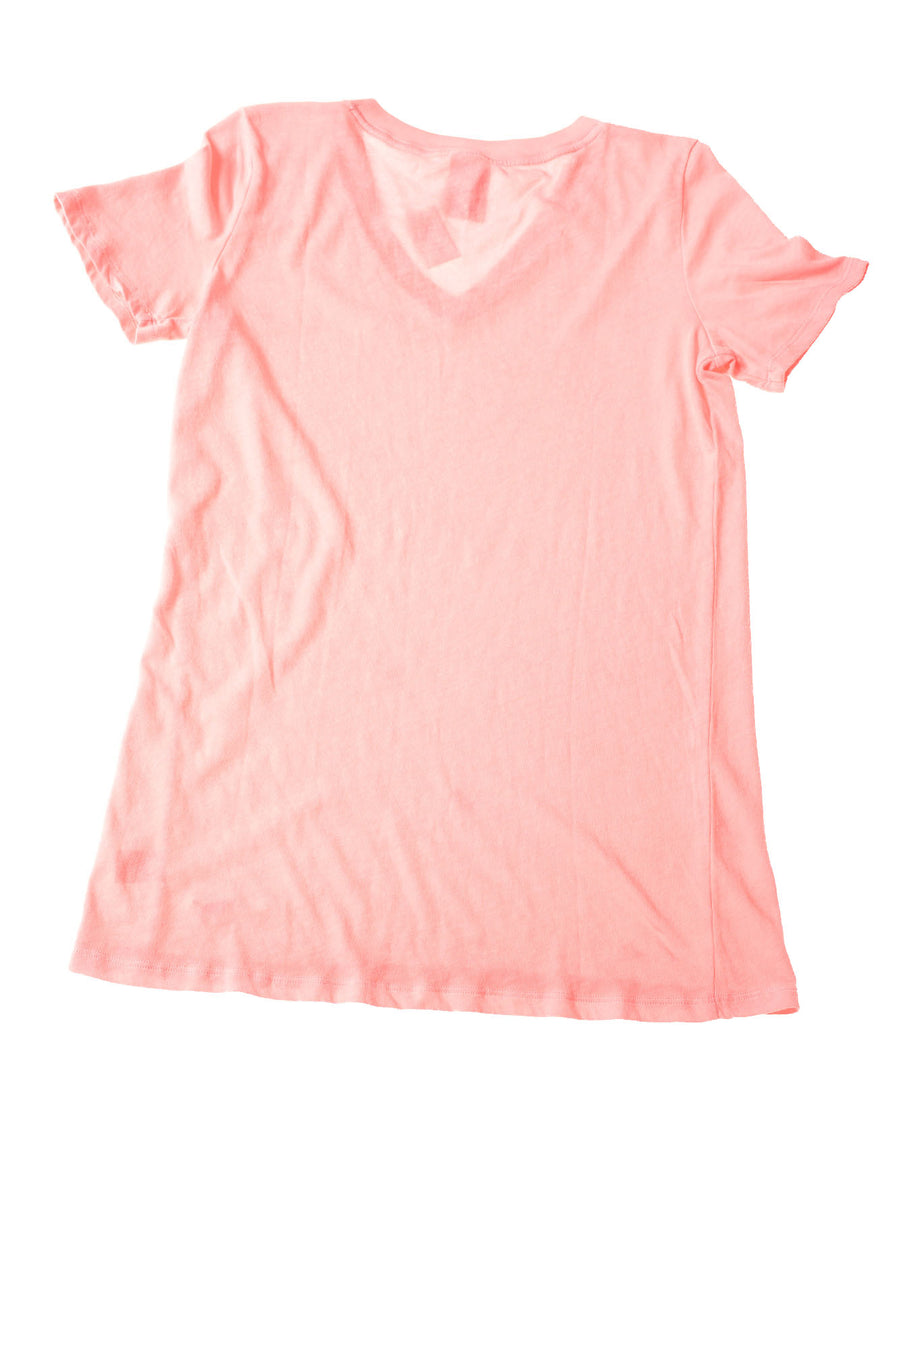 NEW Pink Women's Top X-Small Pale Pink